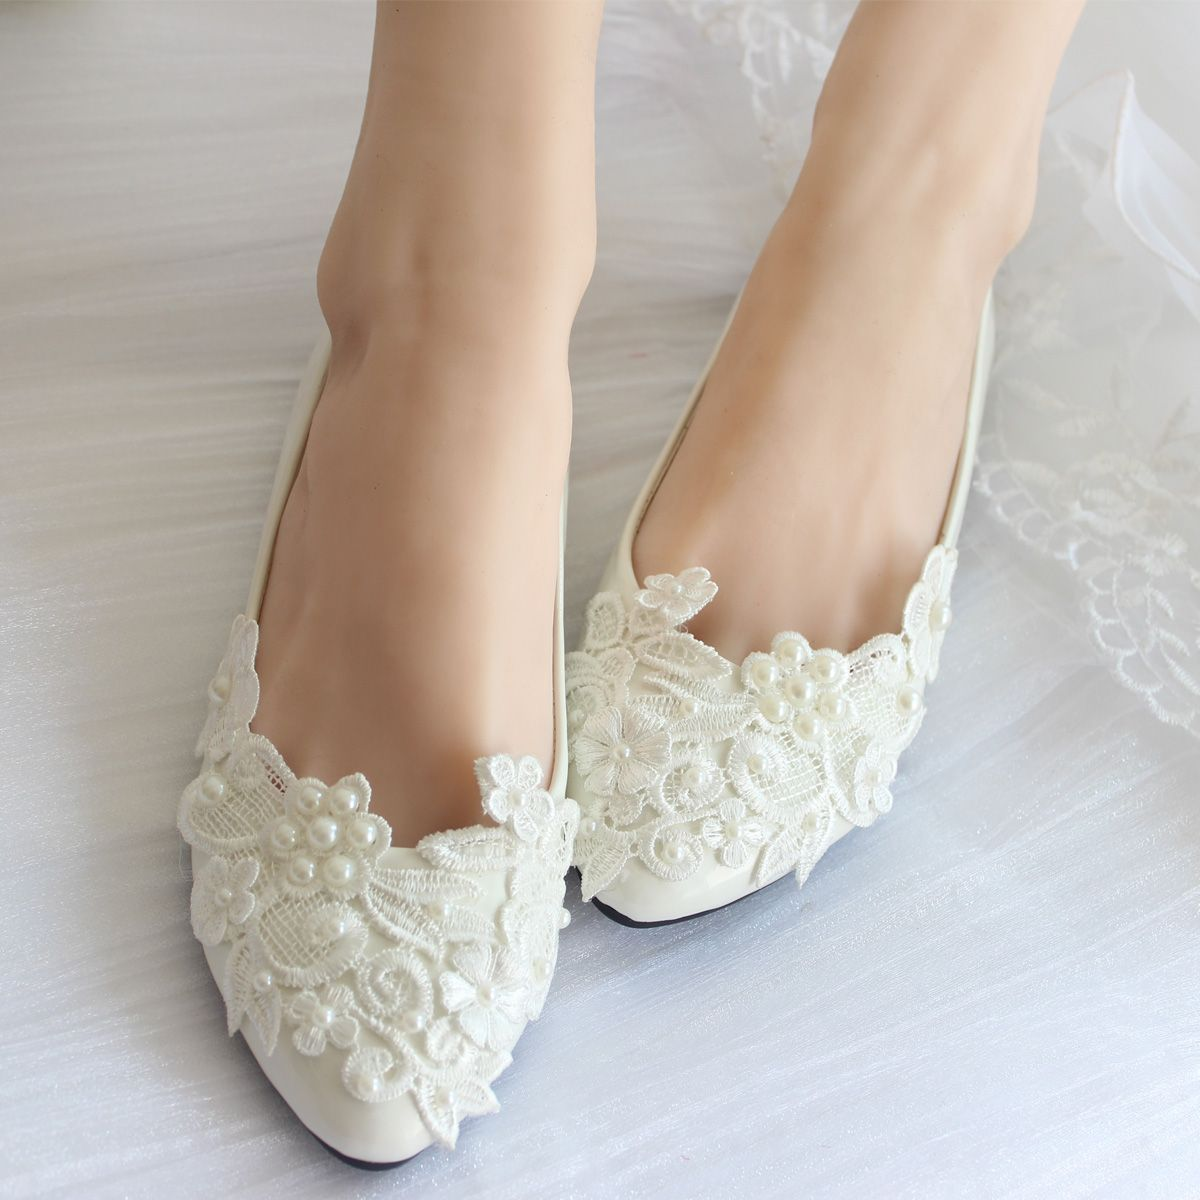 Find More Information about pearl lace wedding shoes white handmade bridal  bridesmaid  shoes flats heel low single shoes ladies shoes e8dbcd887d8f